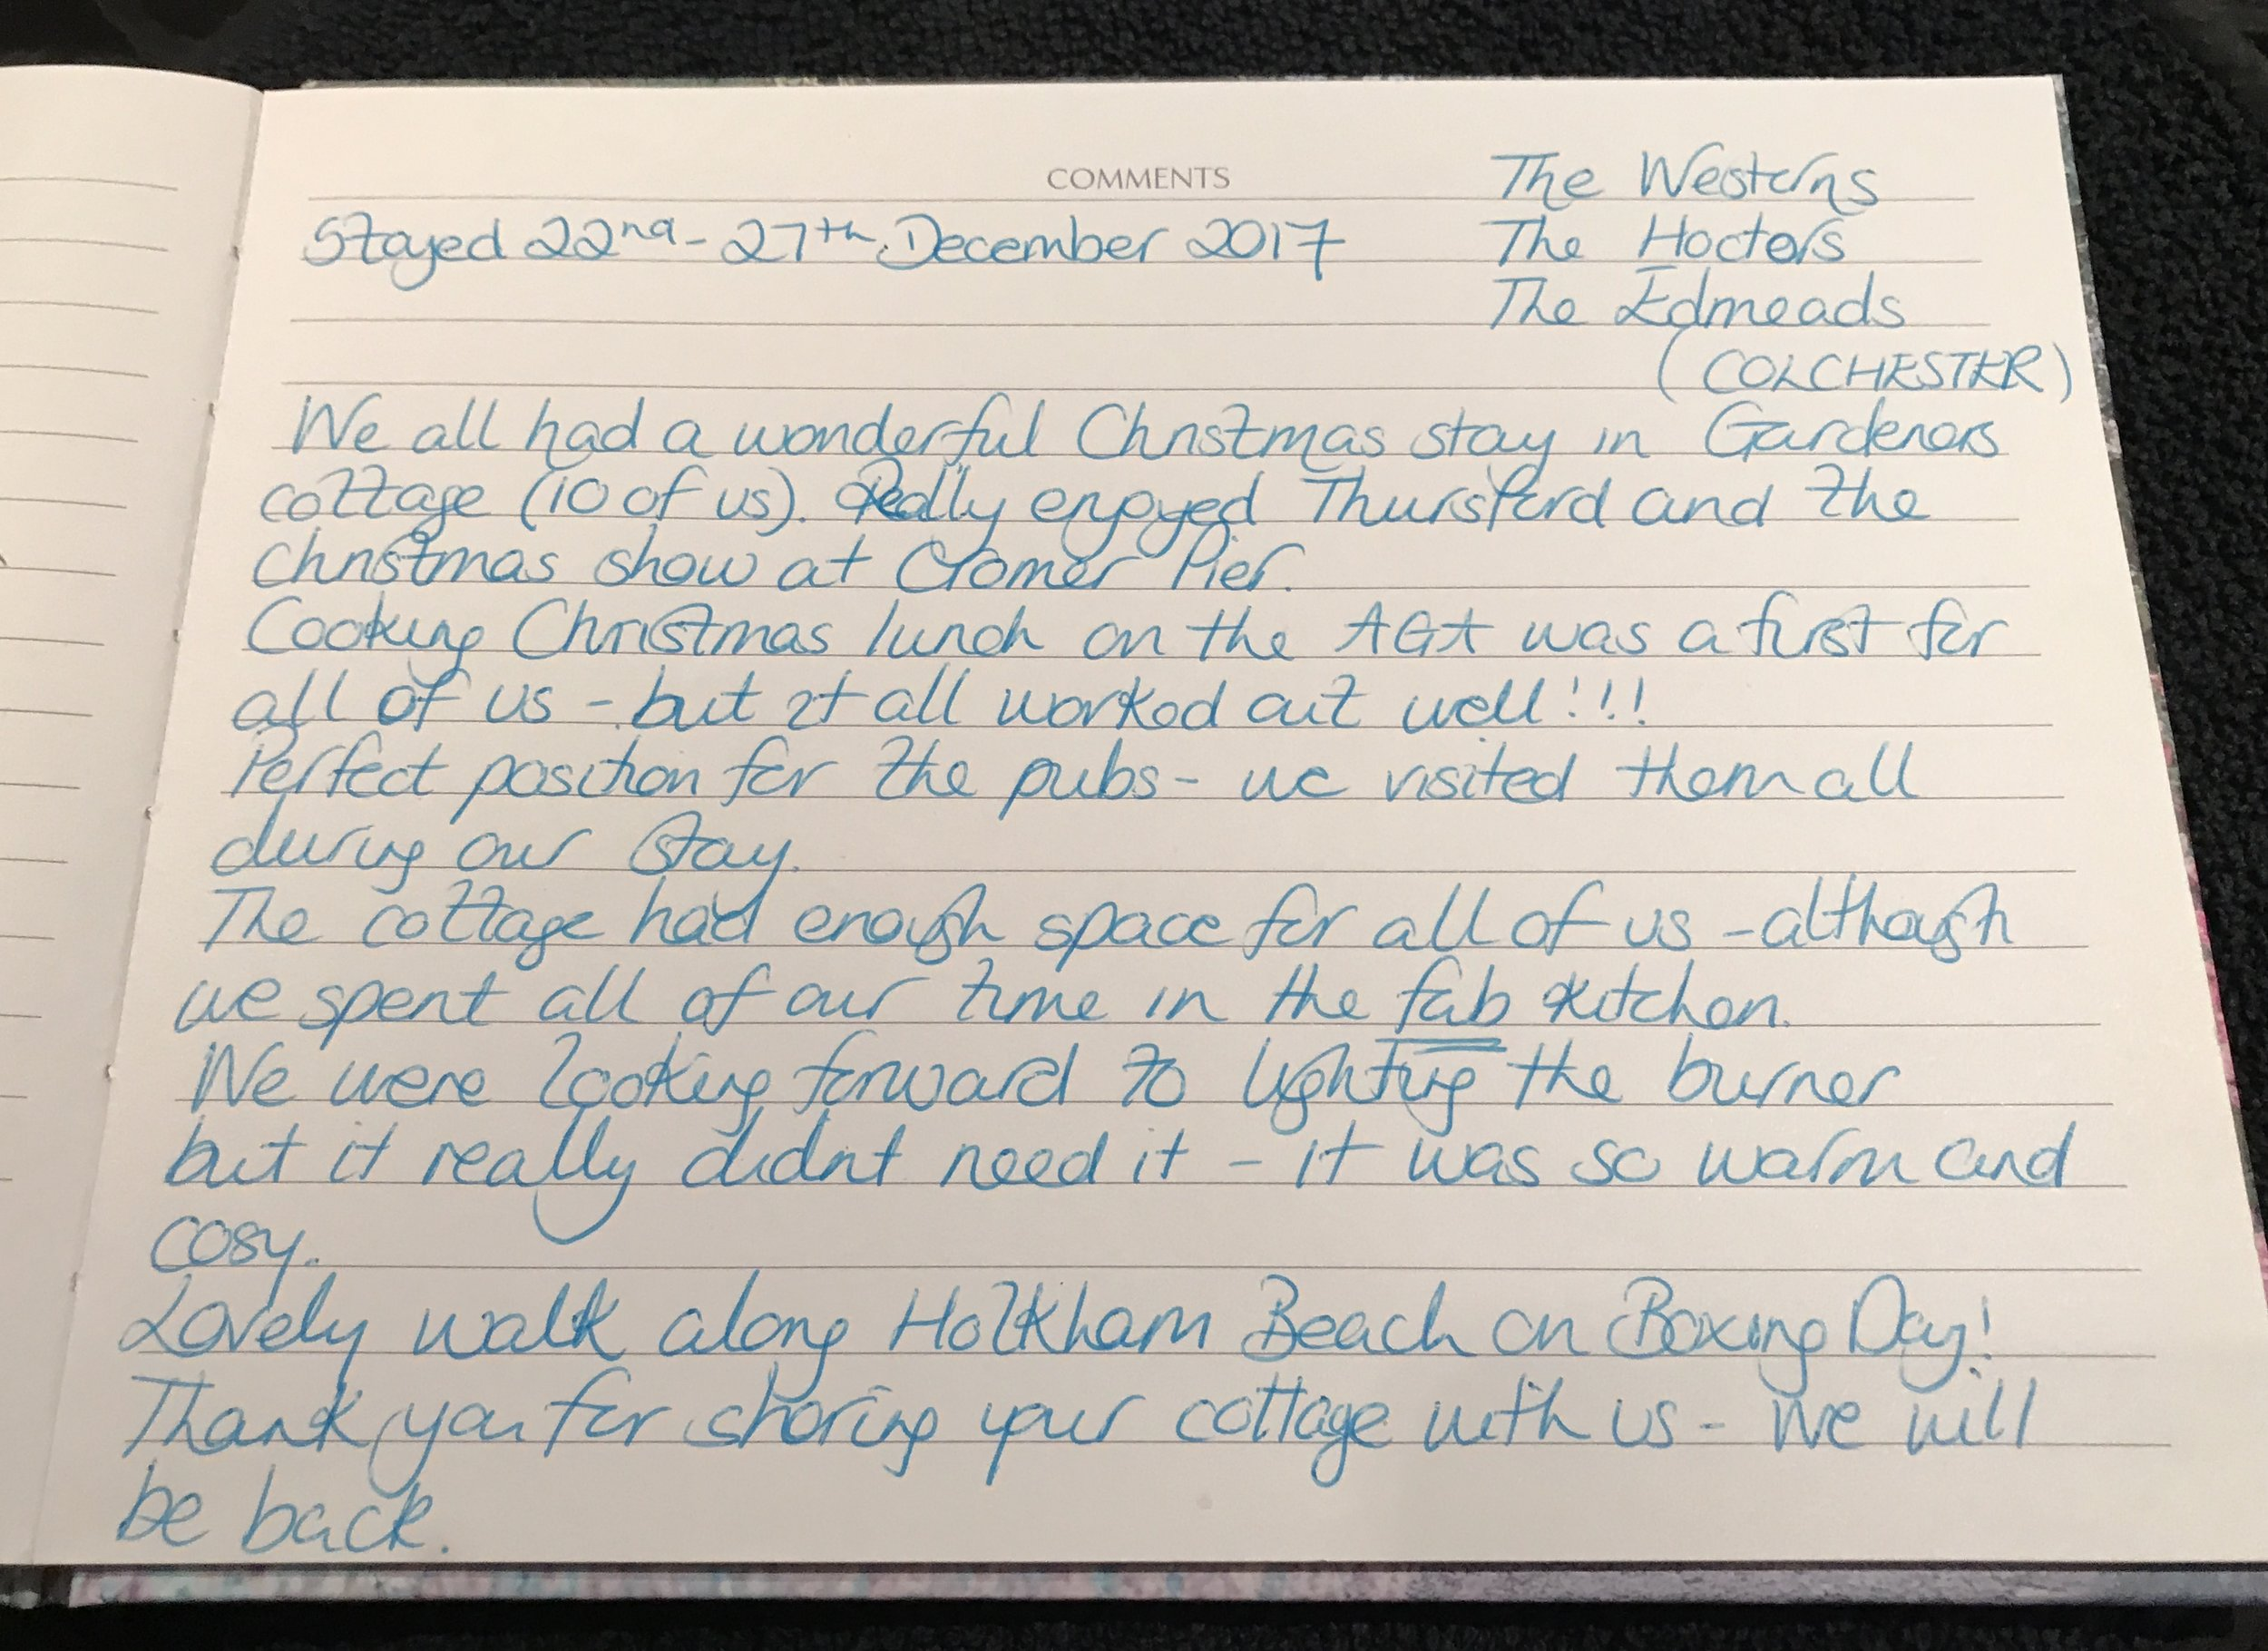 Guest book review